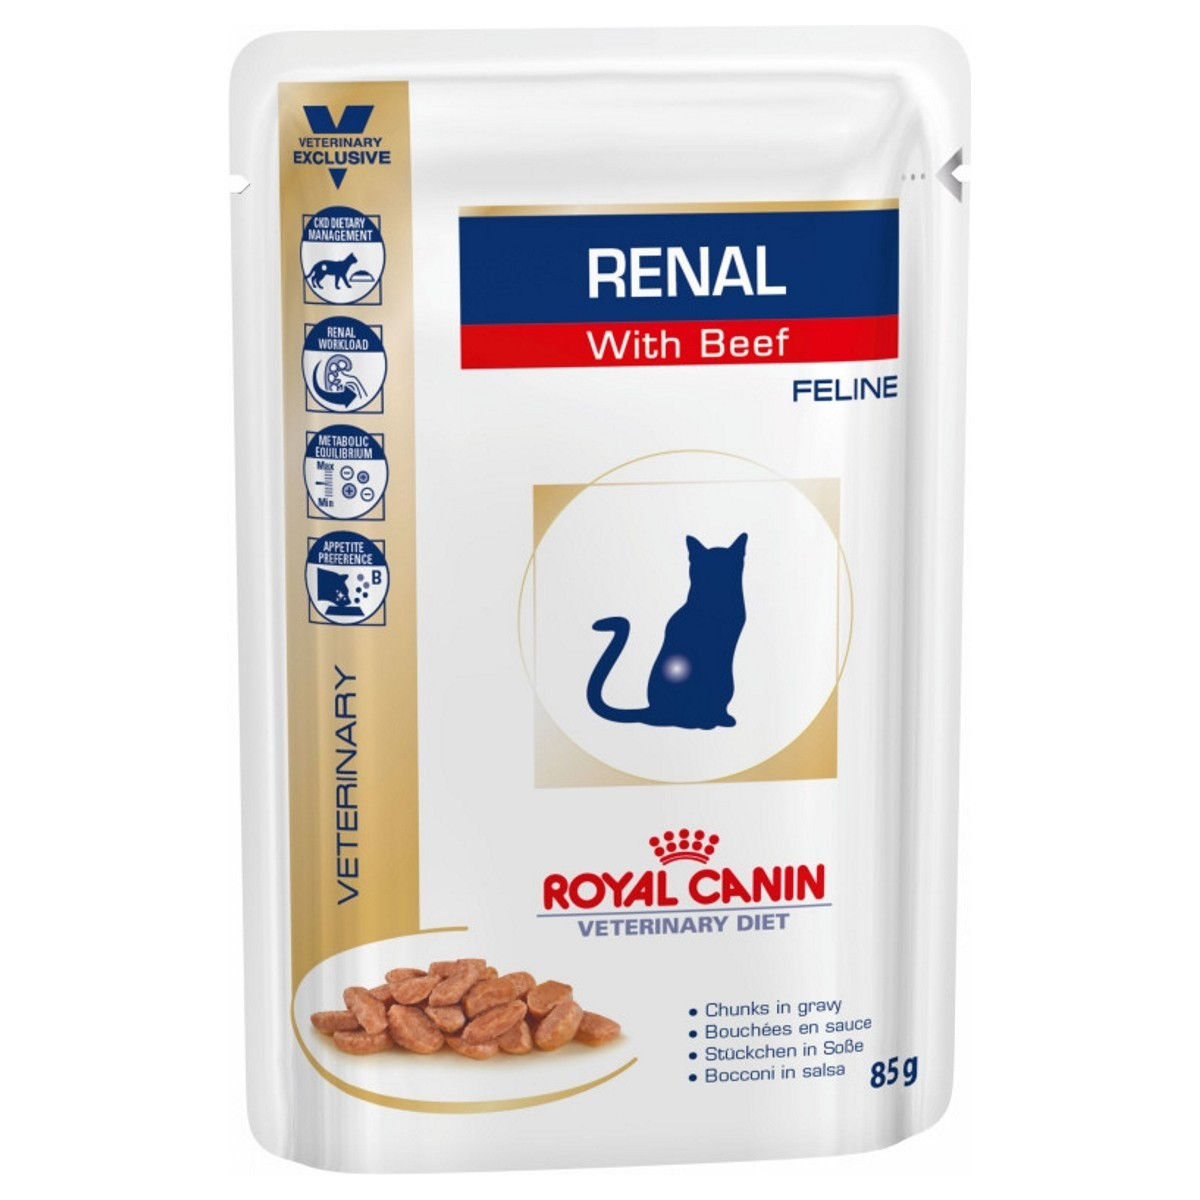 Royal Canin Renal Pouches For Cats From 9 14